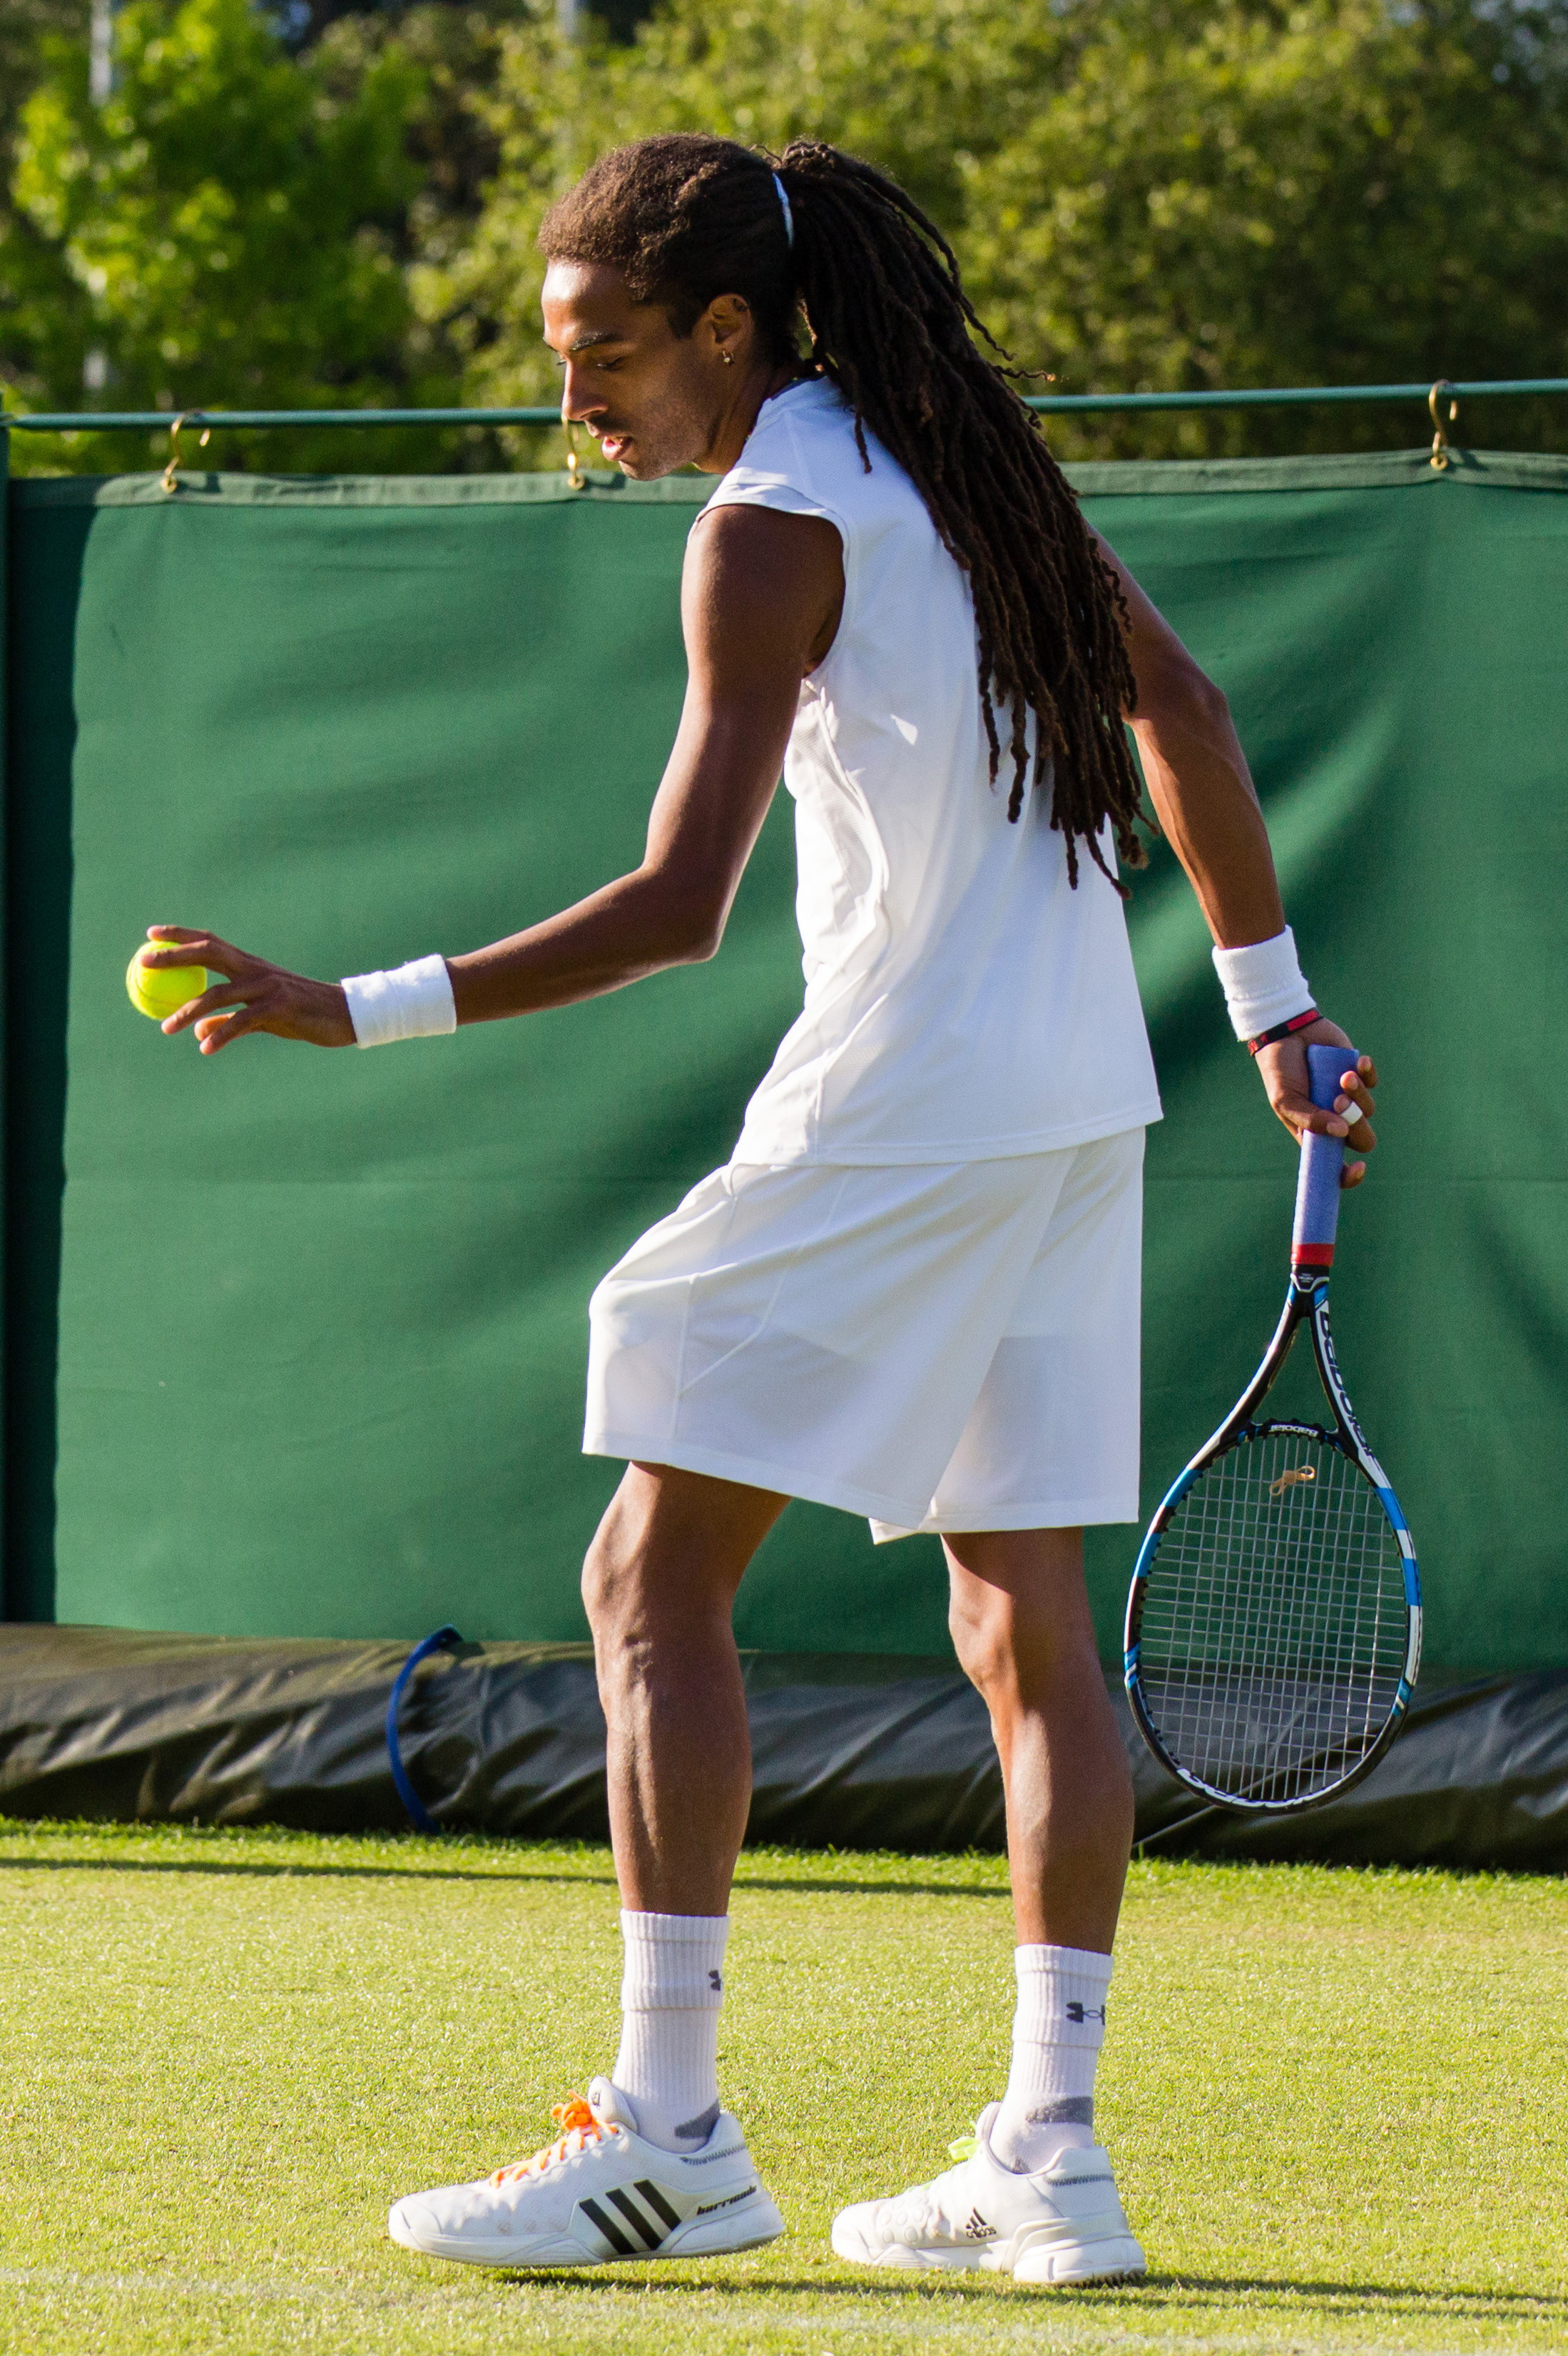 Dustin Brown Wimbledon